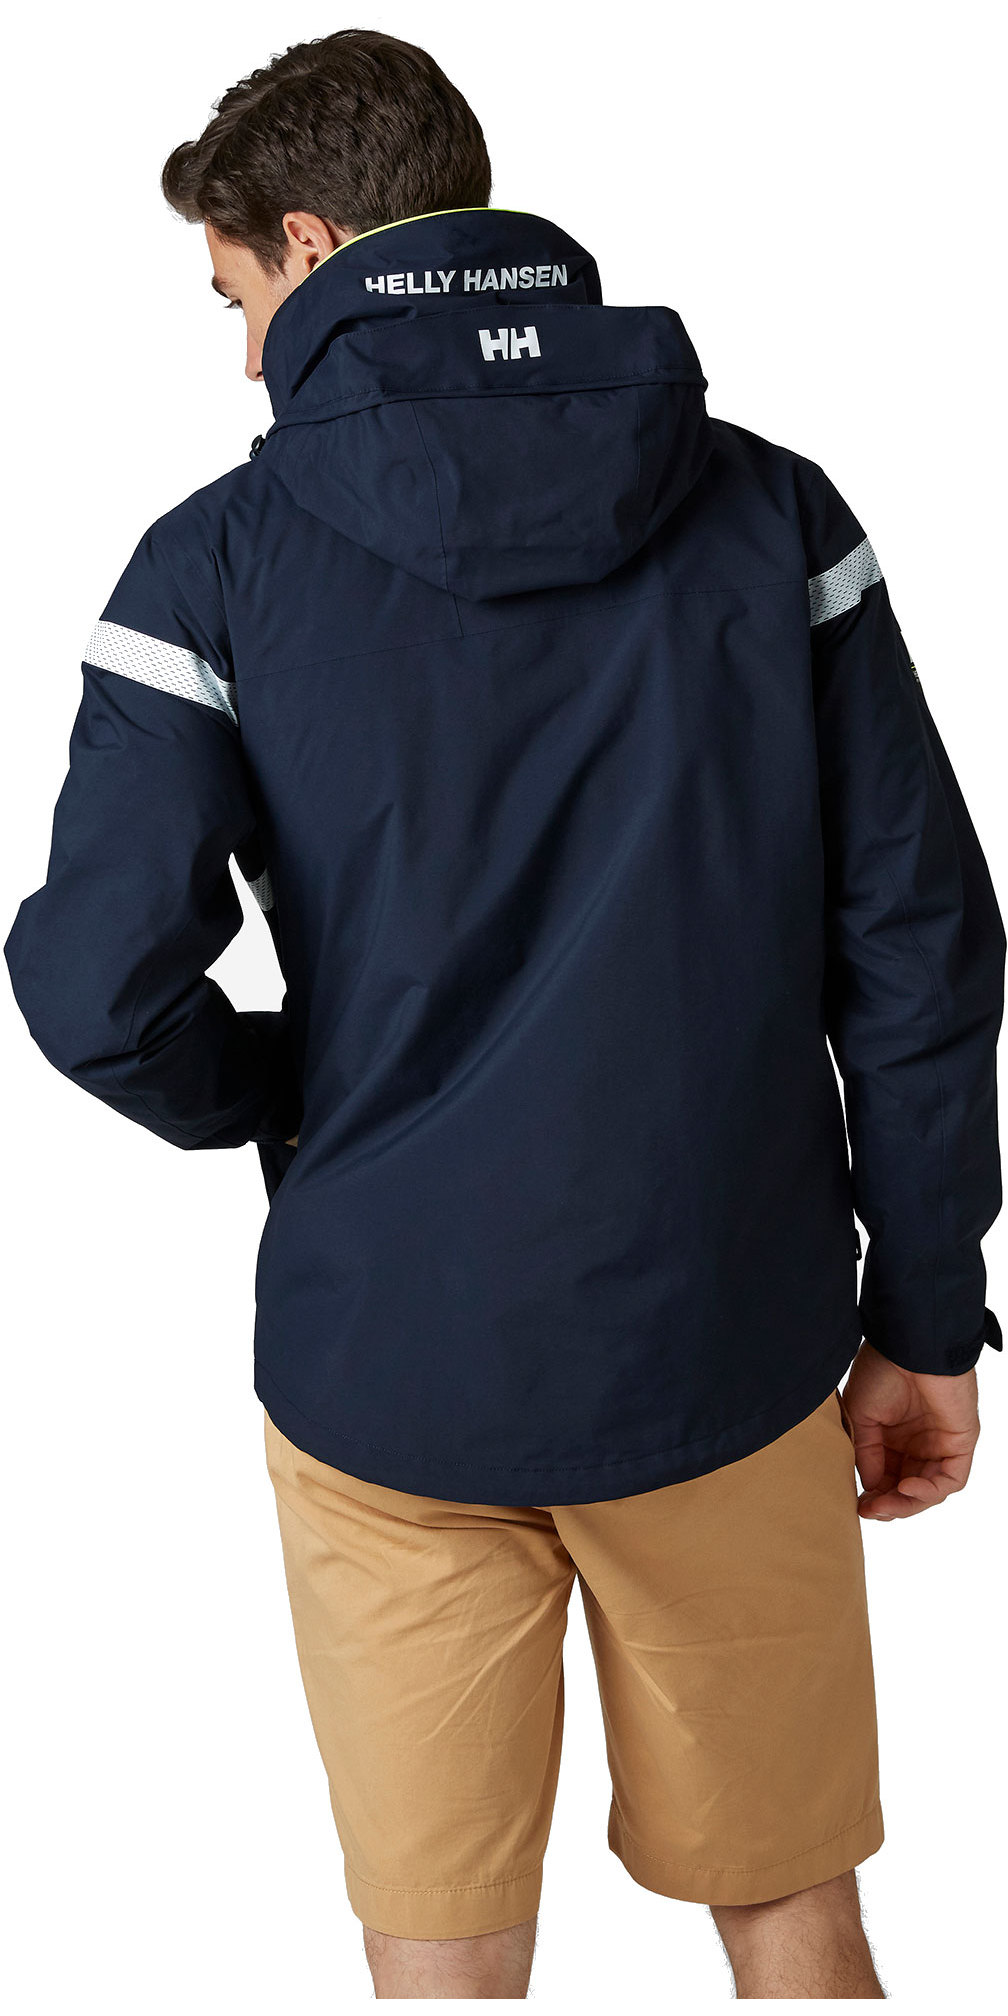 Saltro Jacket | Helly Hansen